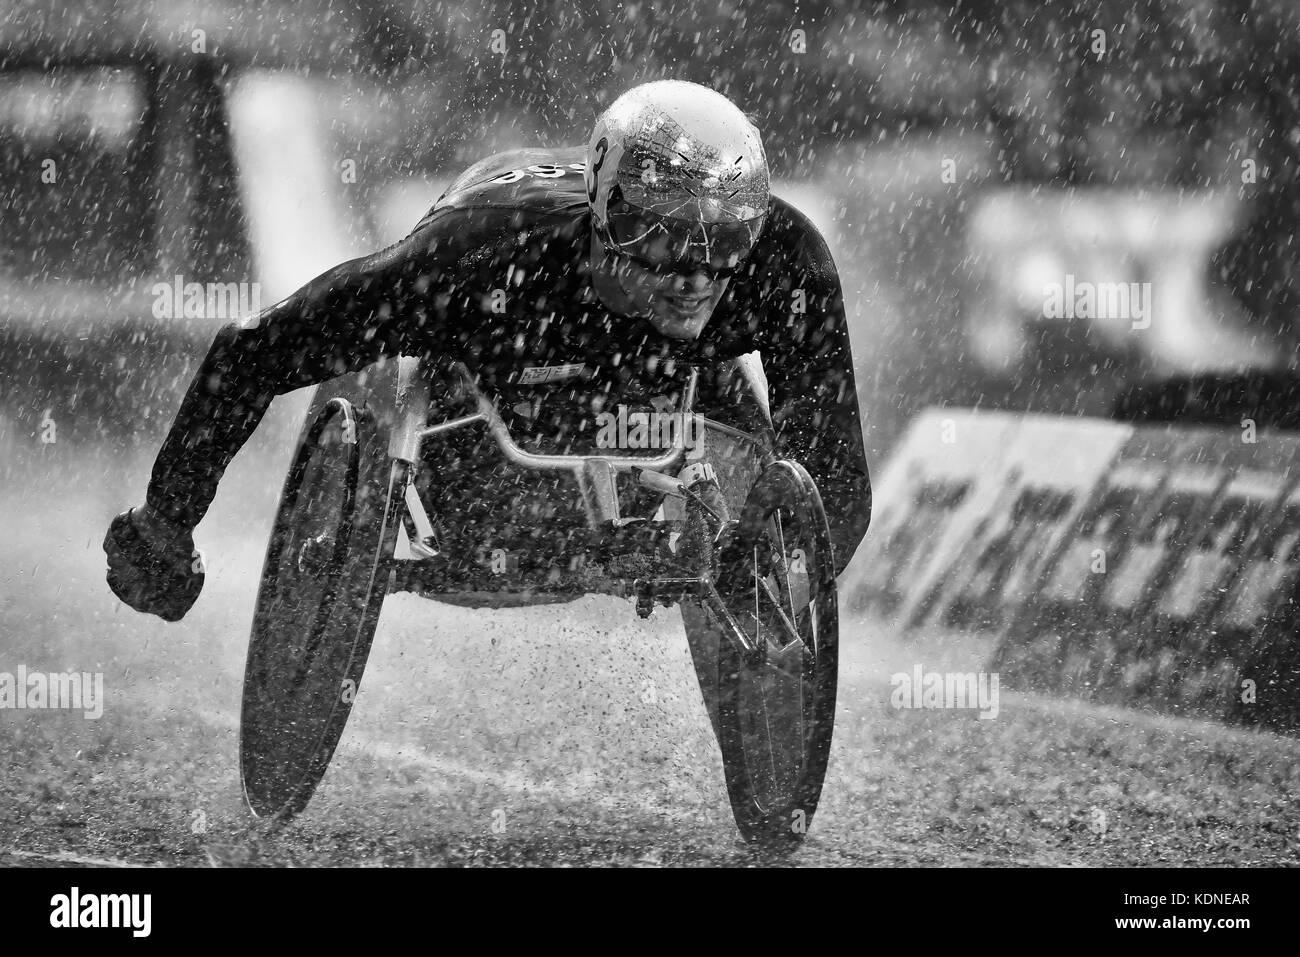 marcel-hug-wheelchair-athlete-competing-in-wet-5000m-t54-final-at-KDNEAR.jpg